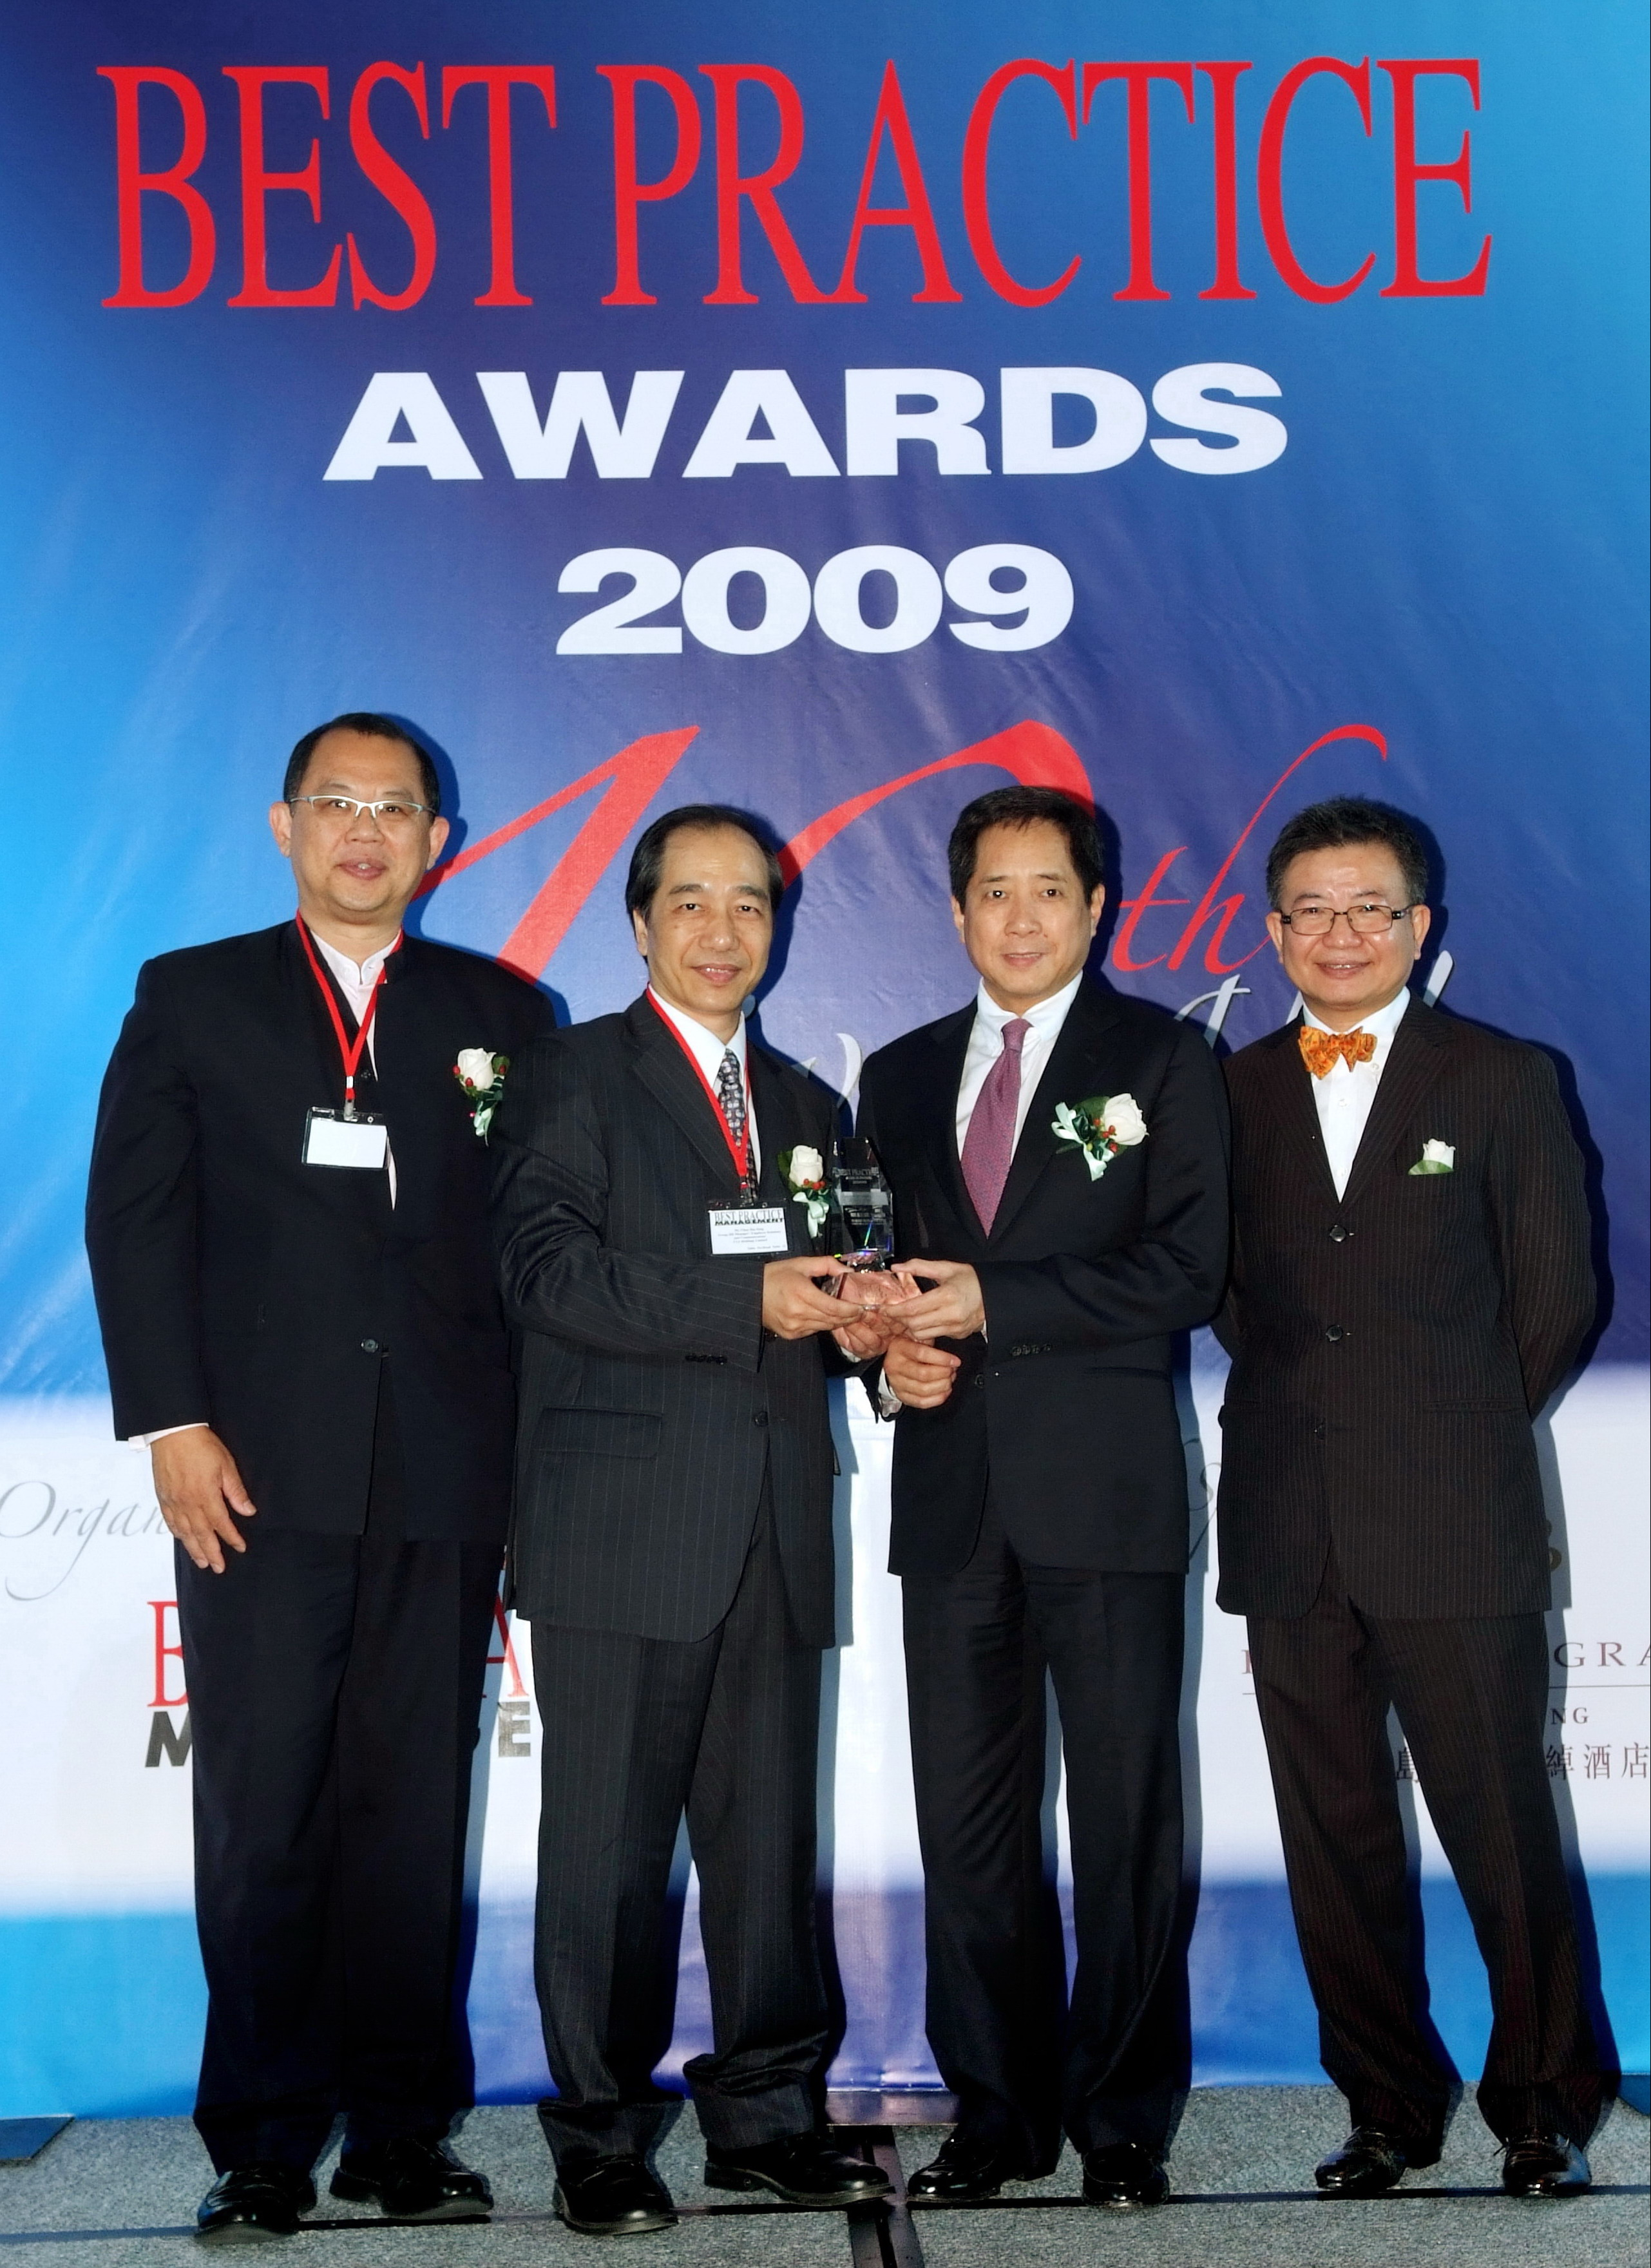 Press Release Photo-NWS Holdings garnered Best Practice Awards 2009 — Employee Involvement